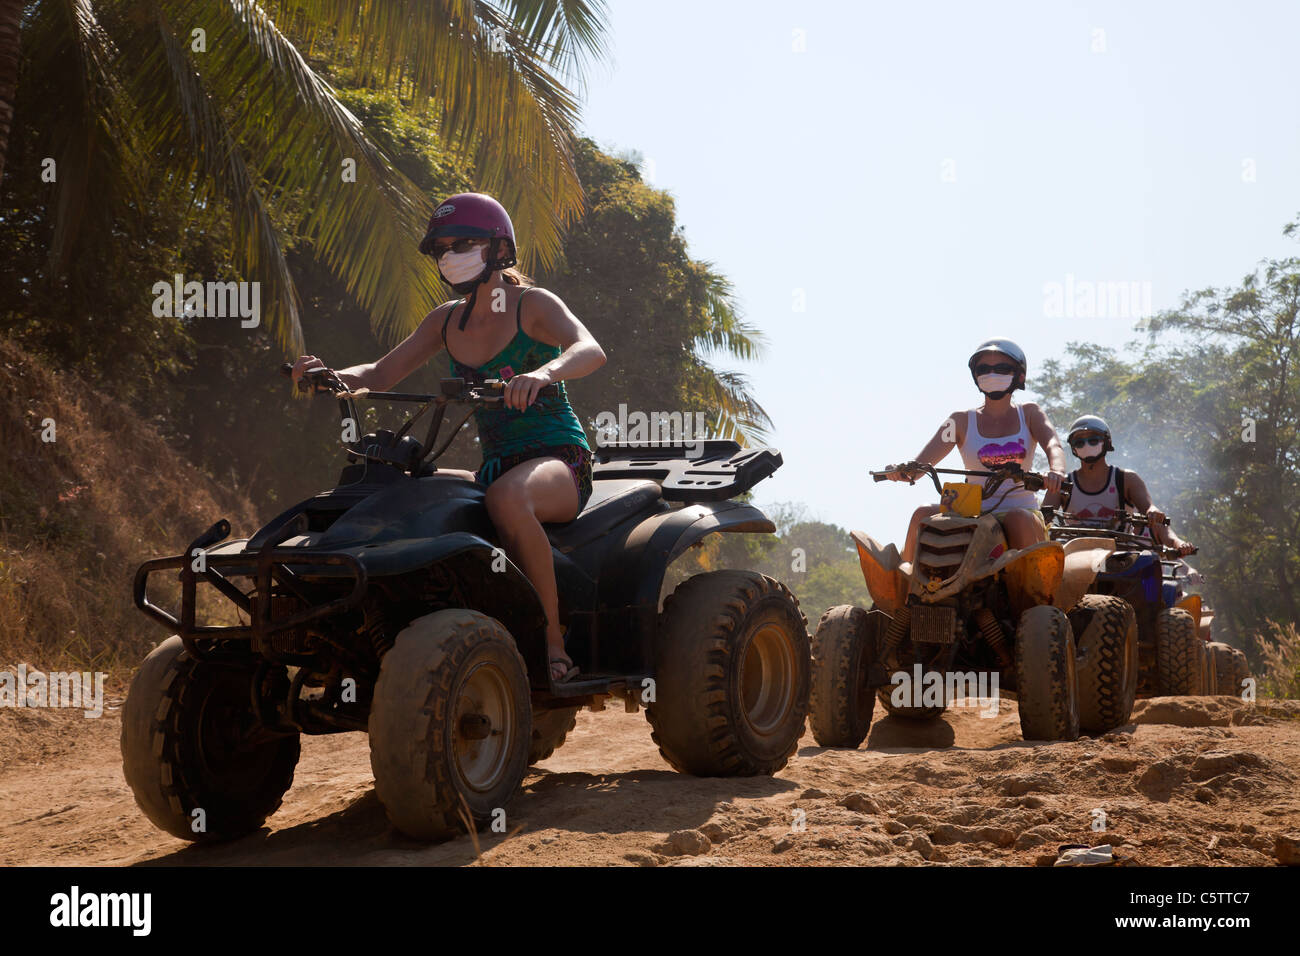 Adventure Tourism Quadrunner tourists on Four-wheel-drive Beach buggies on dirt road. - Stock Image